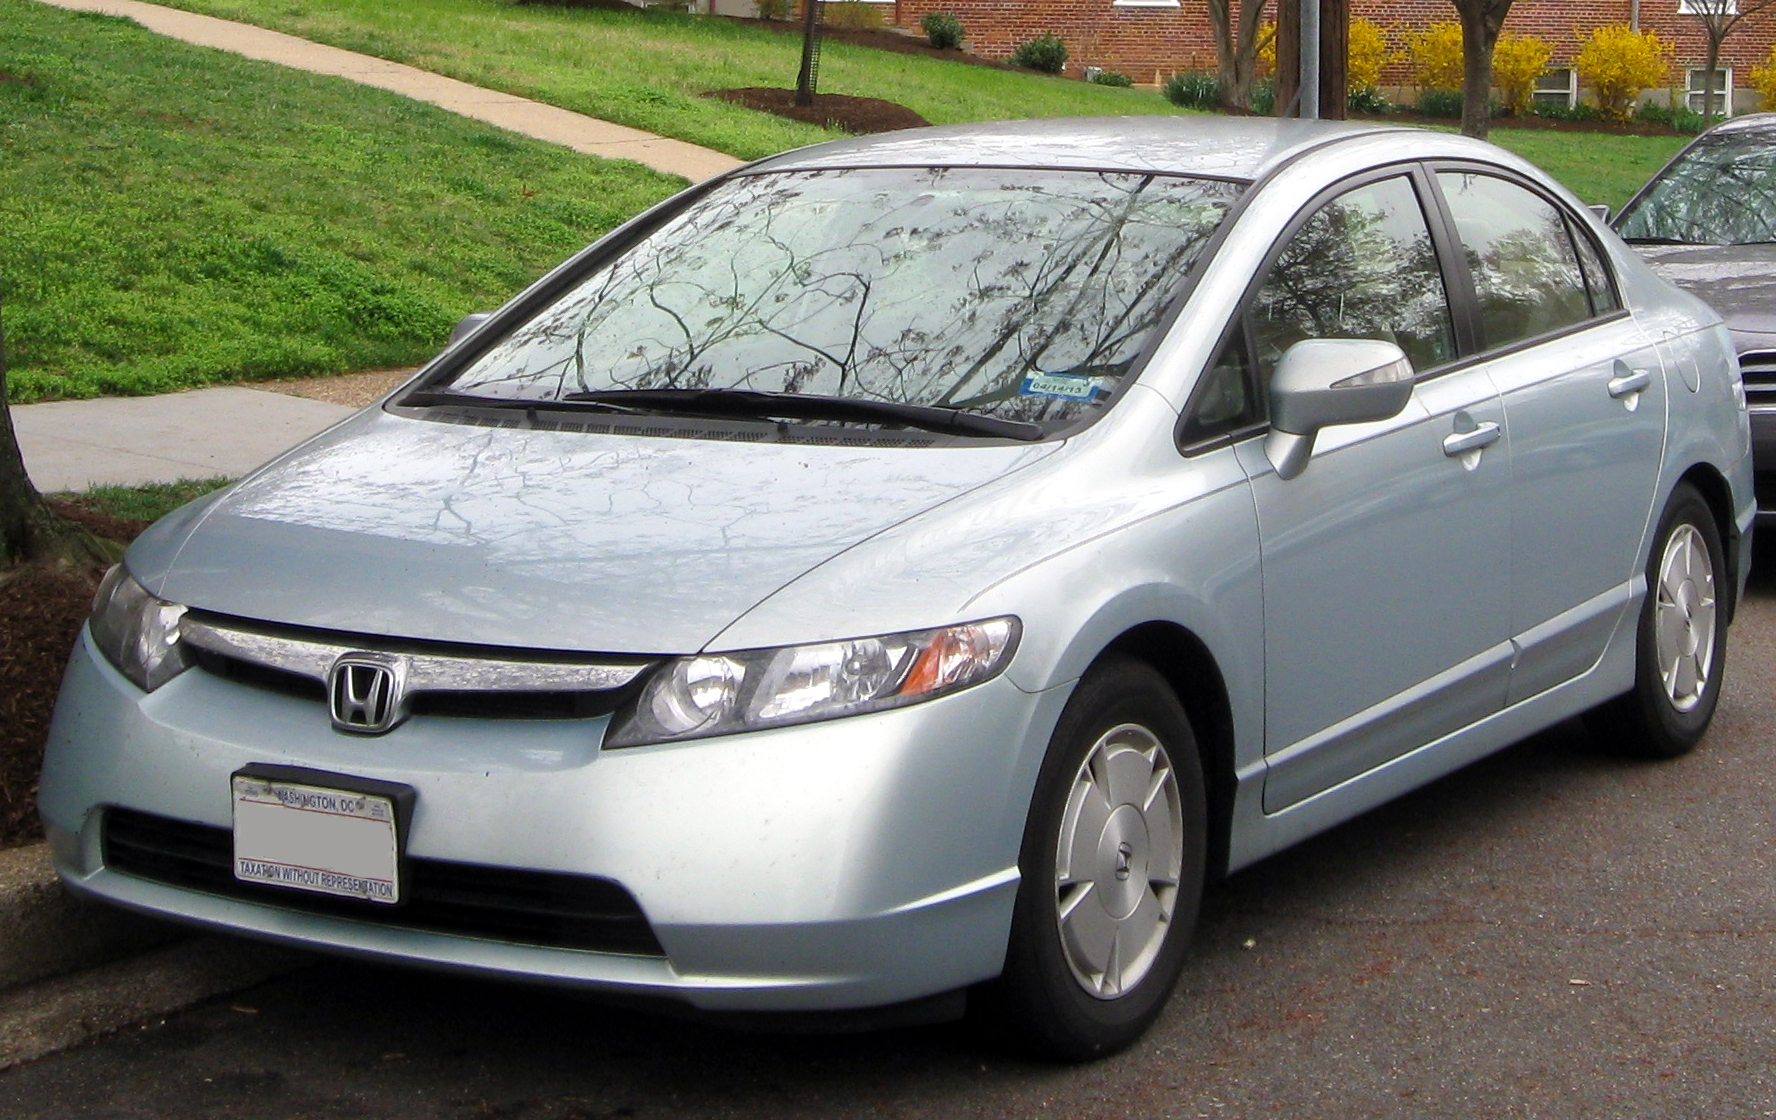 file 2006 2008 honda civic hybrid 03 21 2012 jpg wikimedia commons. Black Bedroom Furniture Sets. Home Design Ideas